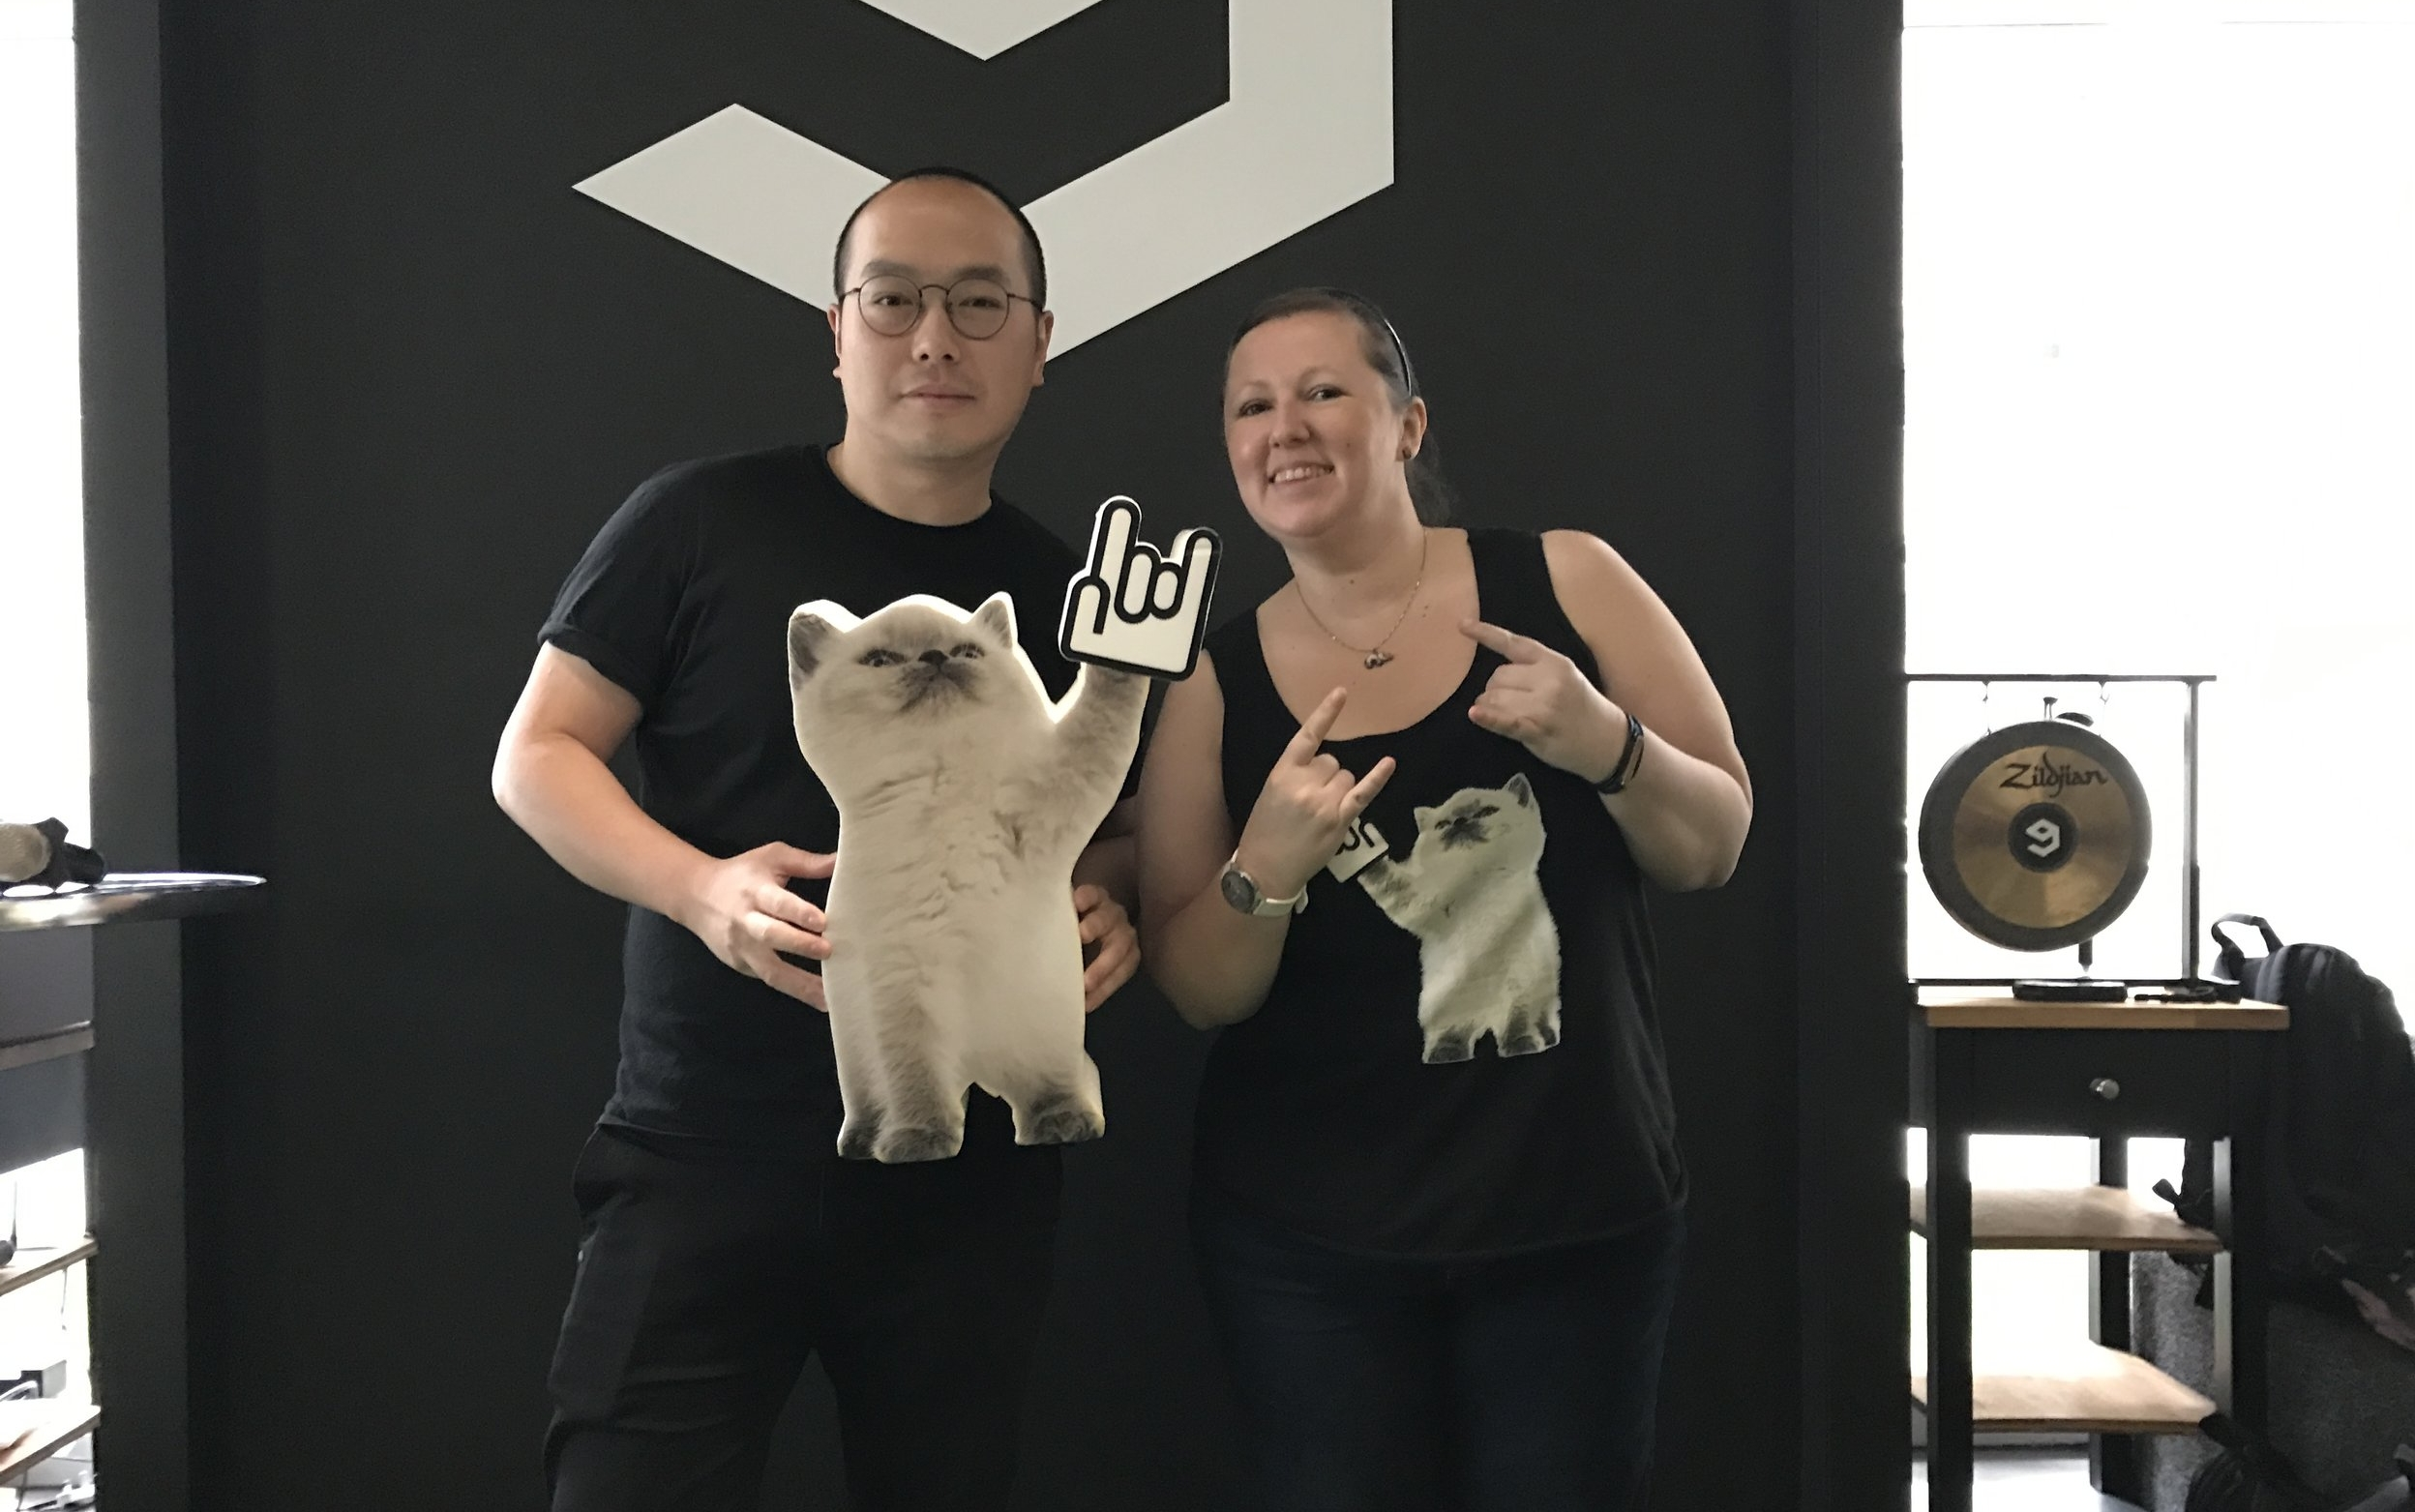 TSS General Manager Holly Harrington Presents giant todd the rock cat to 9GAG CEO Ray Chan